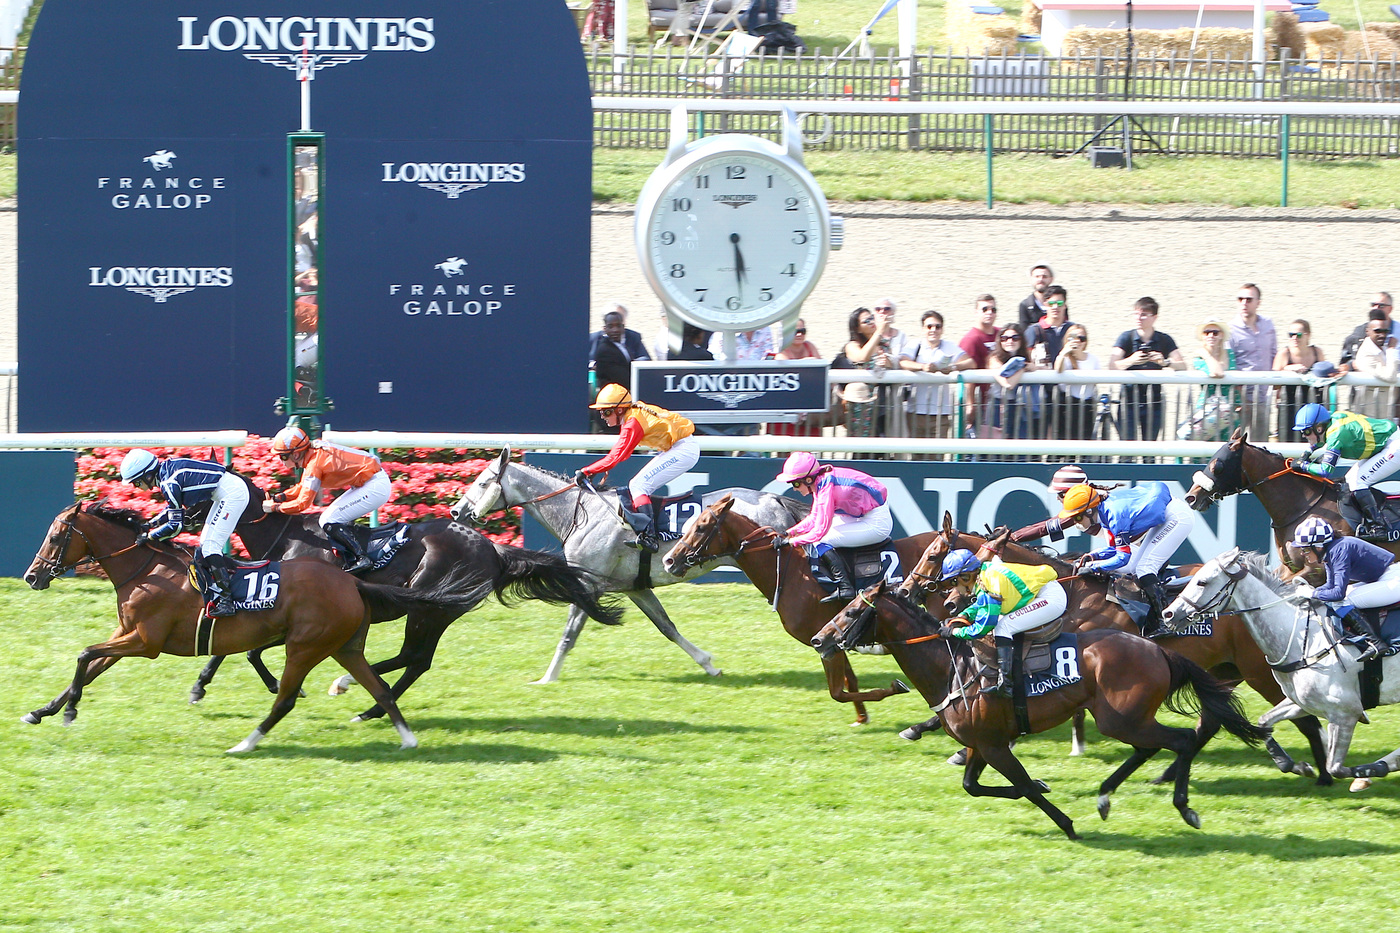 Longines Flat Racing Event: A remarkable 2019 edition of the Prix de Diane Longines in presence of Longines Ambassador of Elegance Simon Baker  11